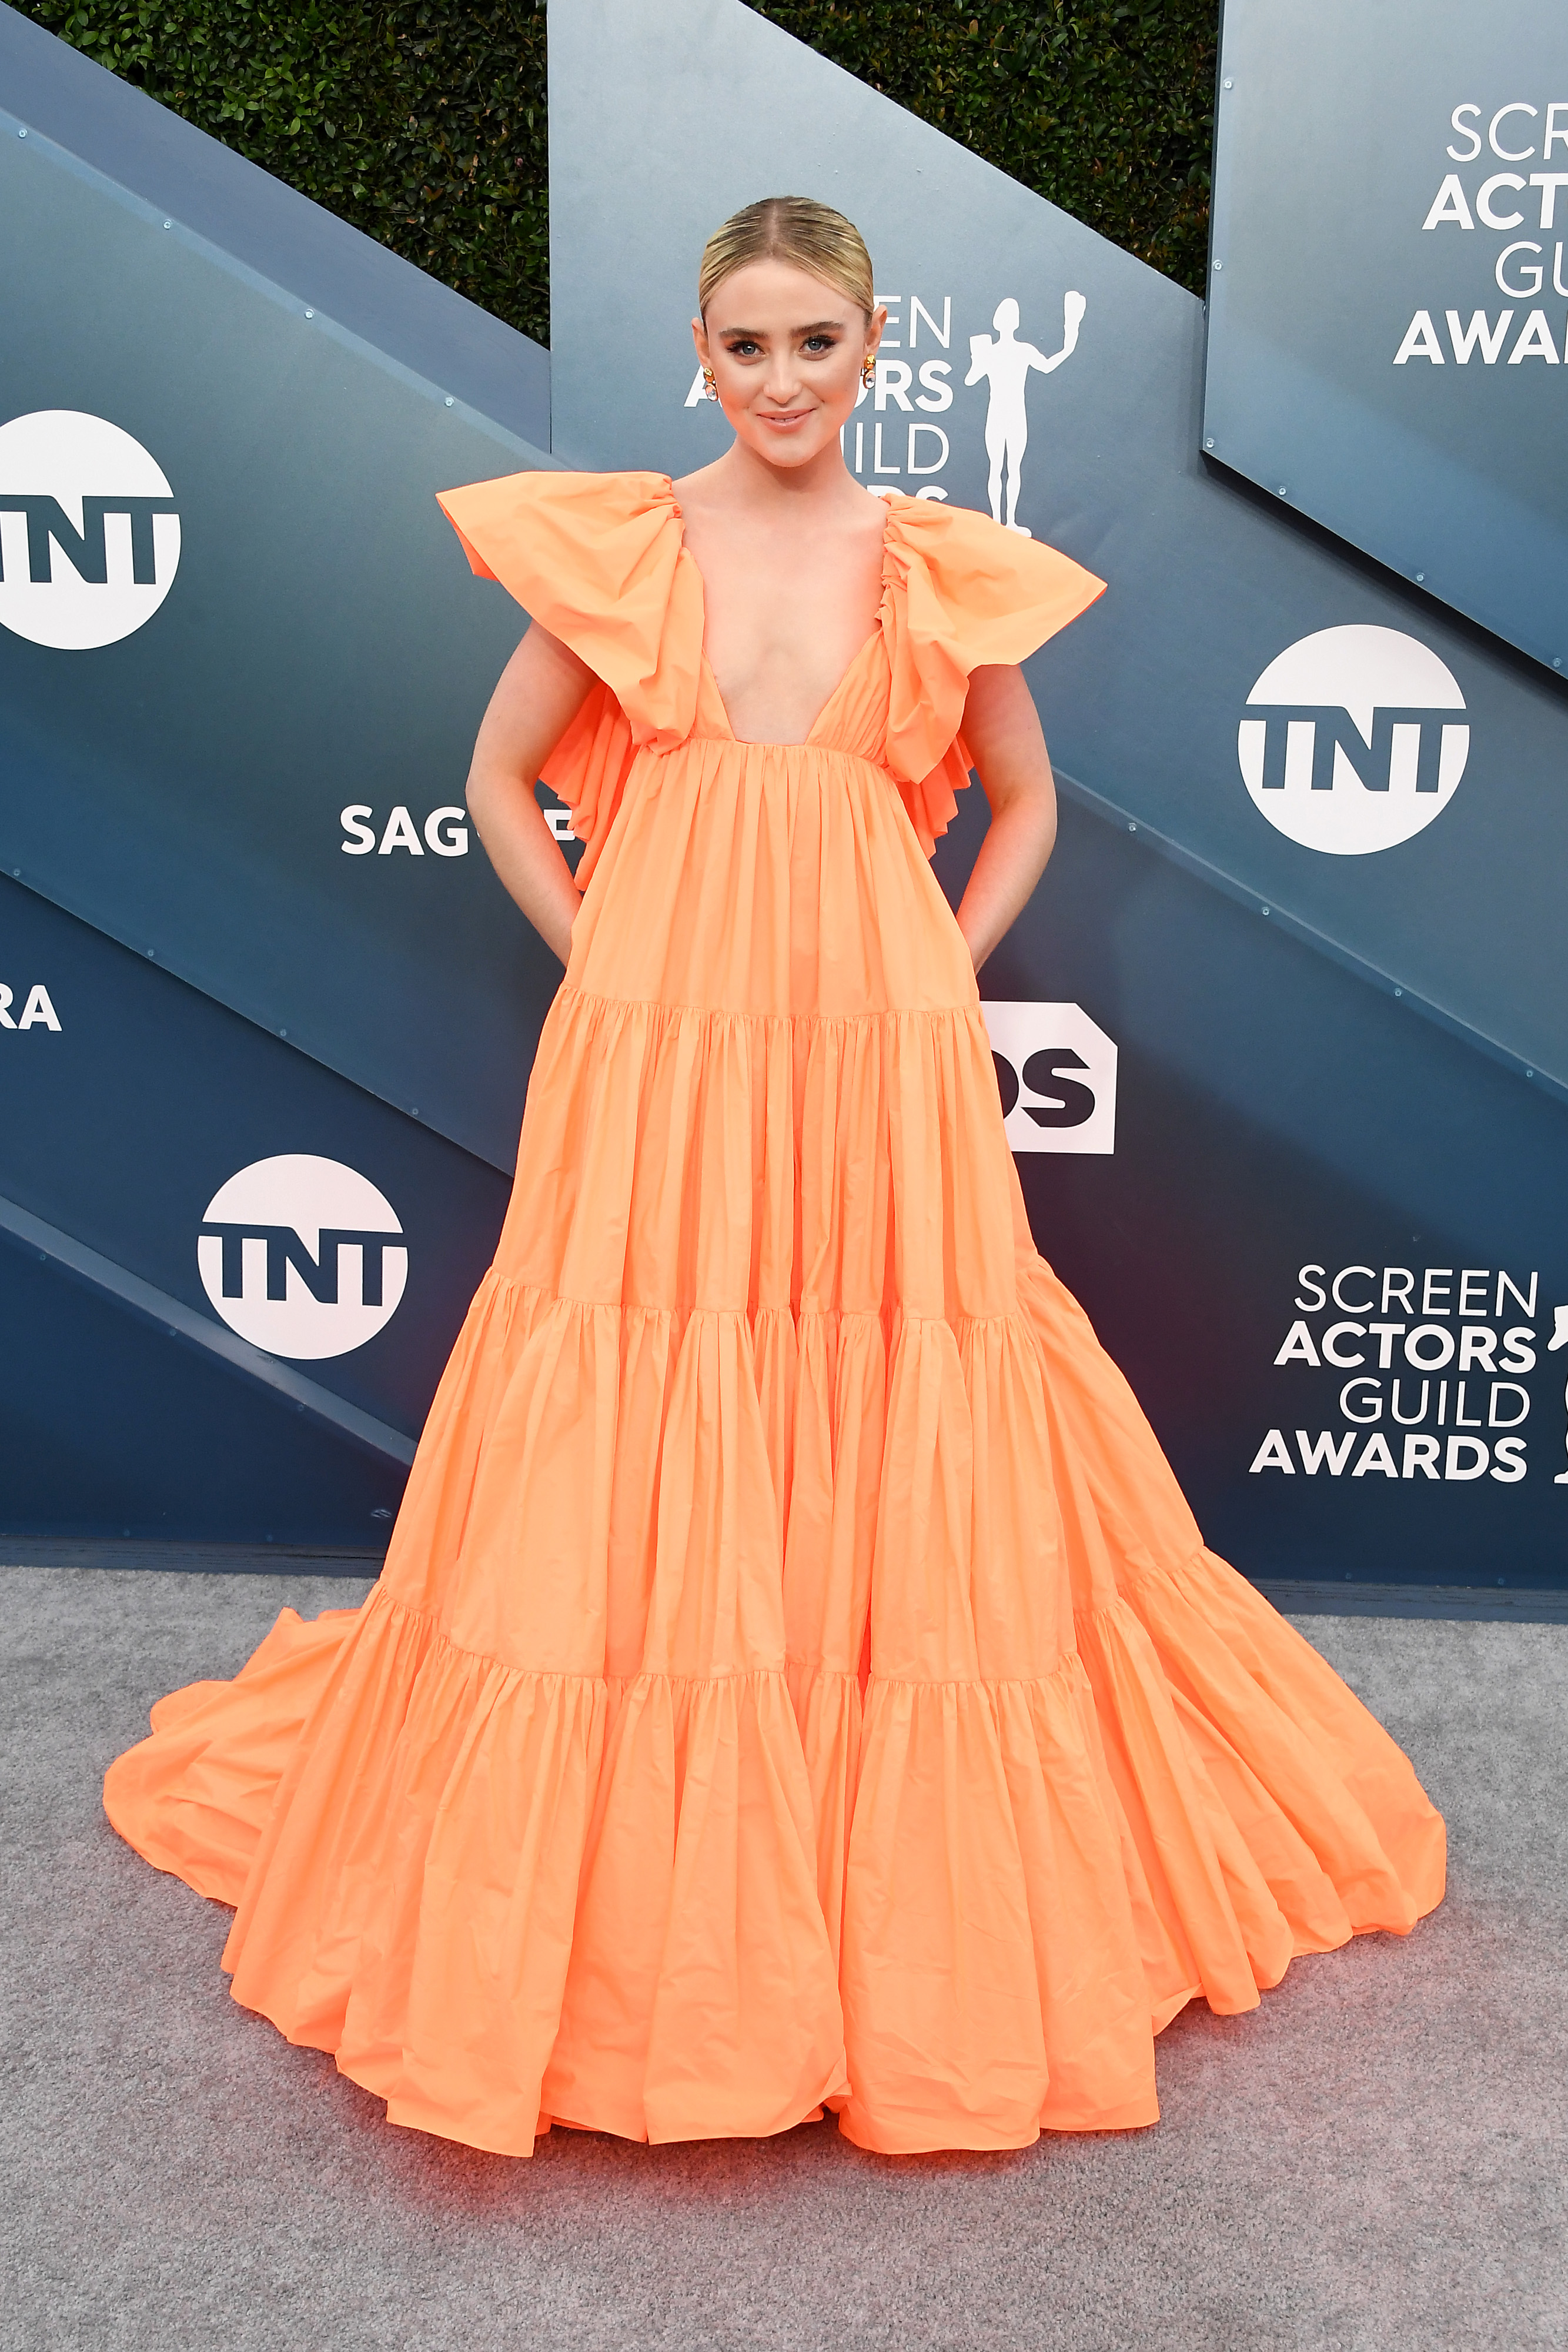 LOS ANGELES, CALIFORNIA - JANUARY 19: Kathryn Newton attends the 26th Annual Screen ActorsGuild Awards at The Shrine Auditorium on January 19, 2020 in Los Angeles, California. (Photo by Steve Granitz/WireImage)